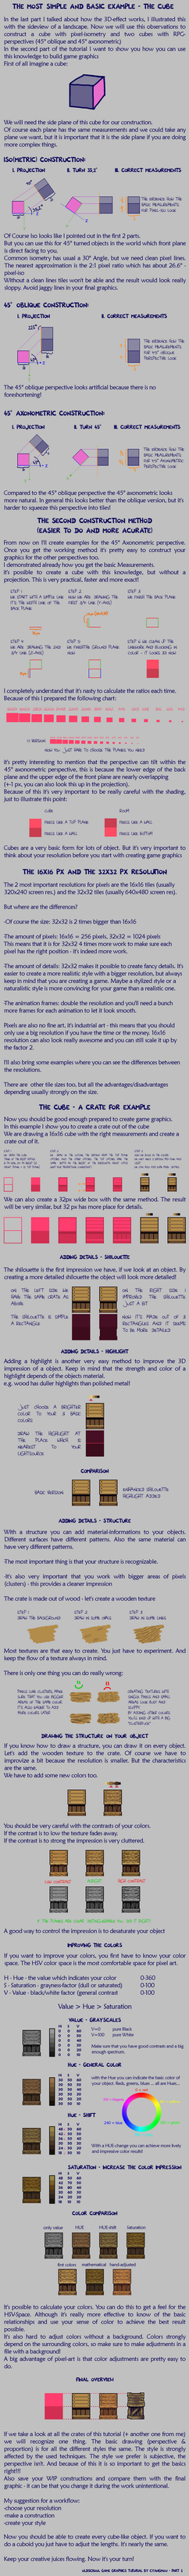 Pixel Art Tutorial 3 - The 'perfect' crate by Cyangmou